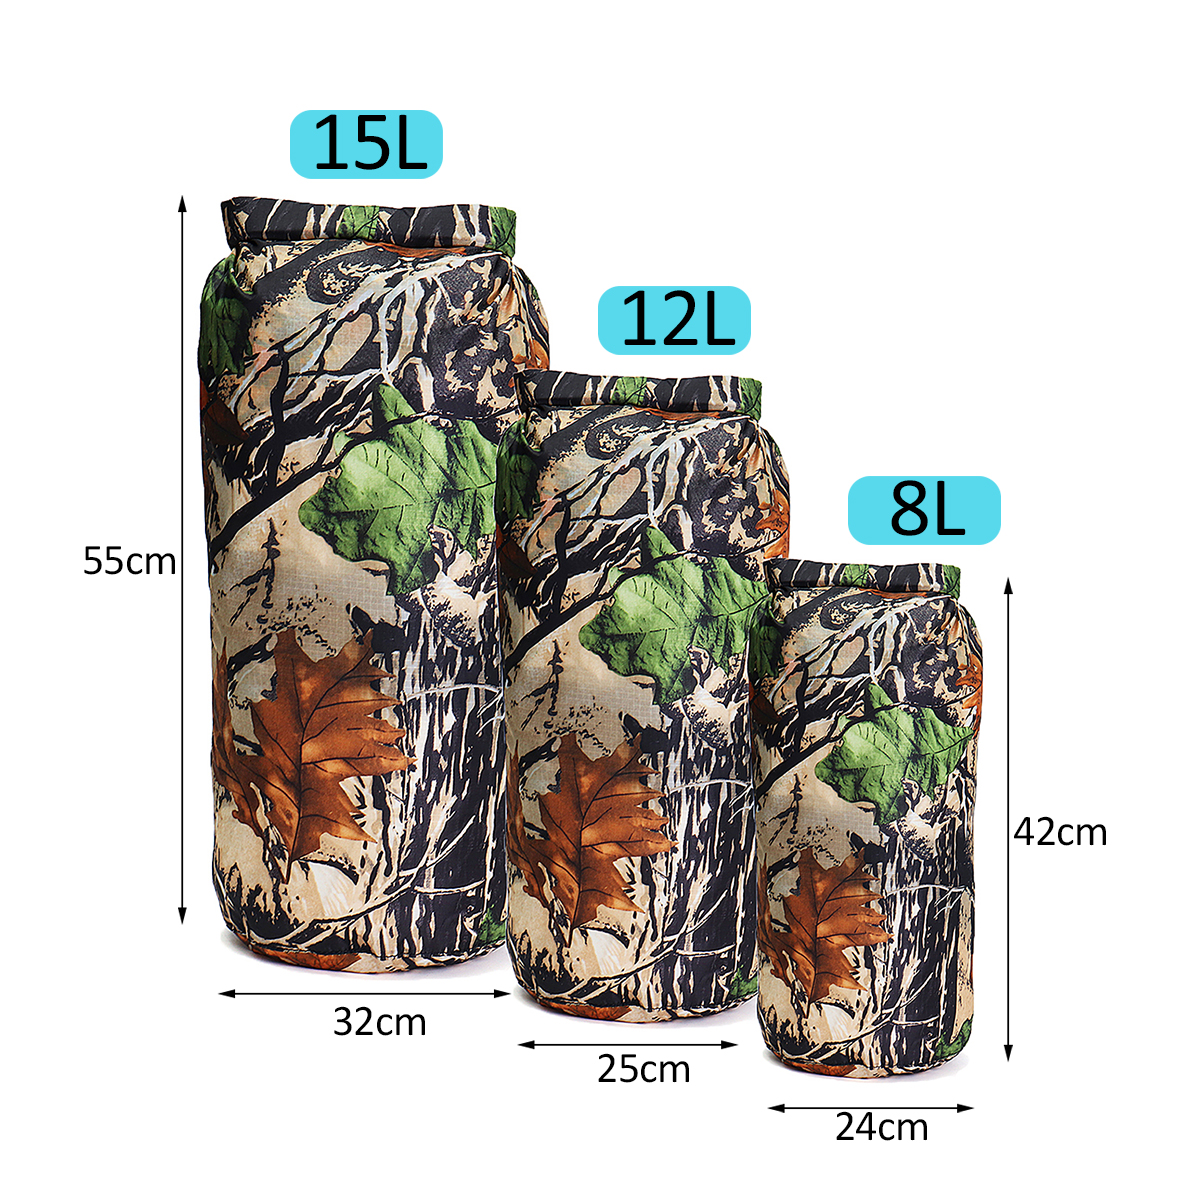 8L+12L+15L Outdoor Waterproof Dry Bag Set Camping Hiking Pouch For Floating Boating Kayaking